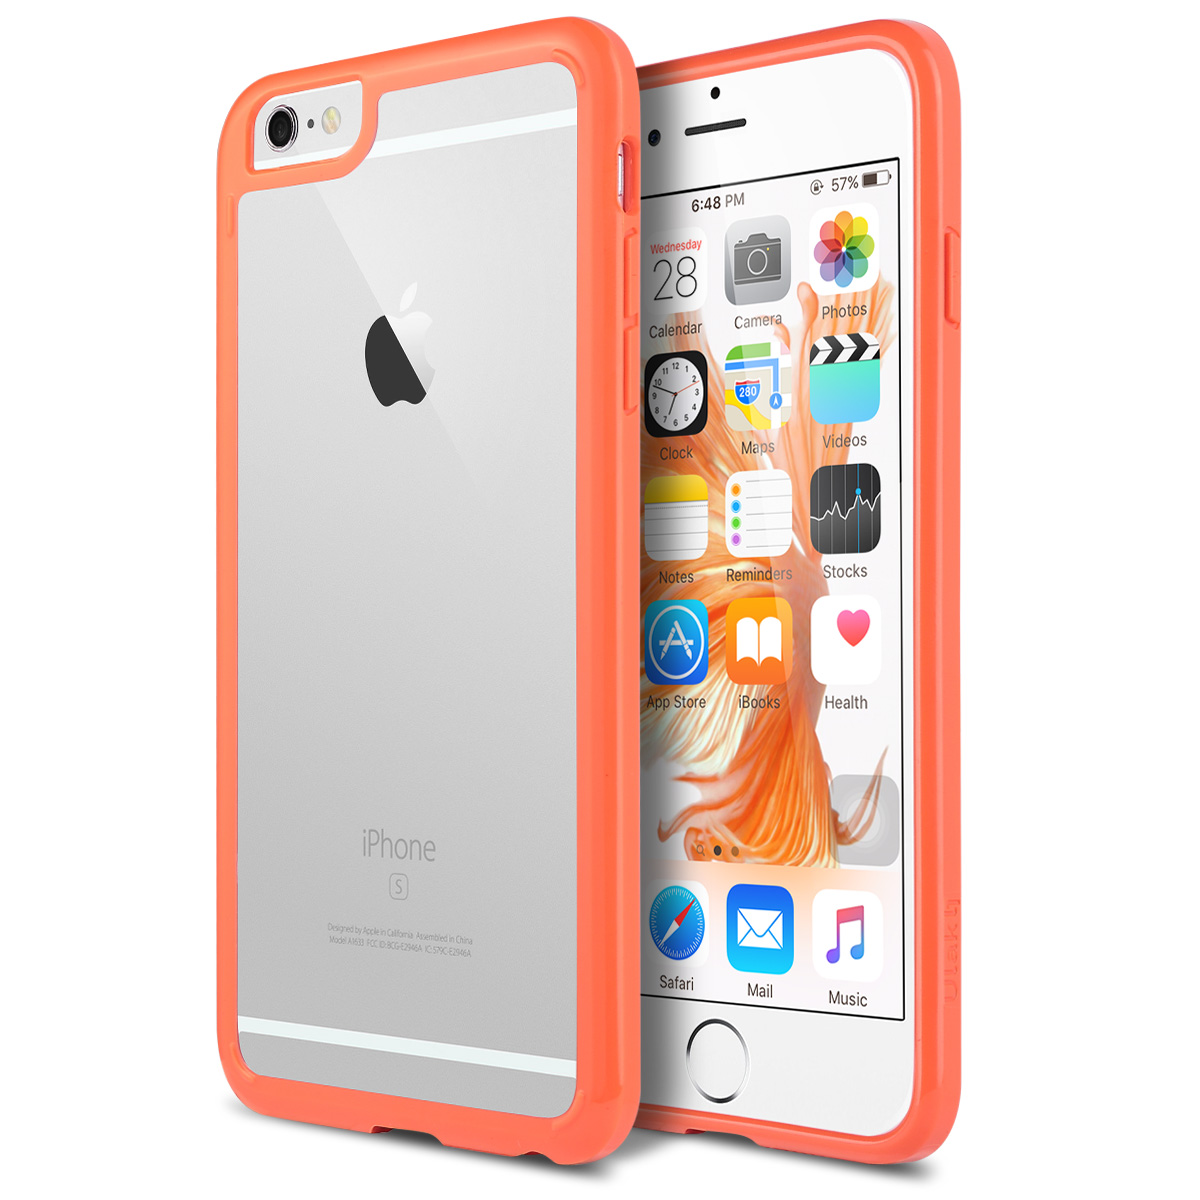 iPhone 6s Plus Case, ULAK [CLEAR SLIM] Hybrid Case PC Back TPU Bumper Corner Drop Protection Cover For Apple iPhone 6s Plus / 6 Plus 5.5 inch